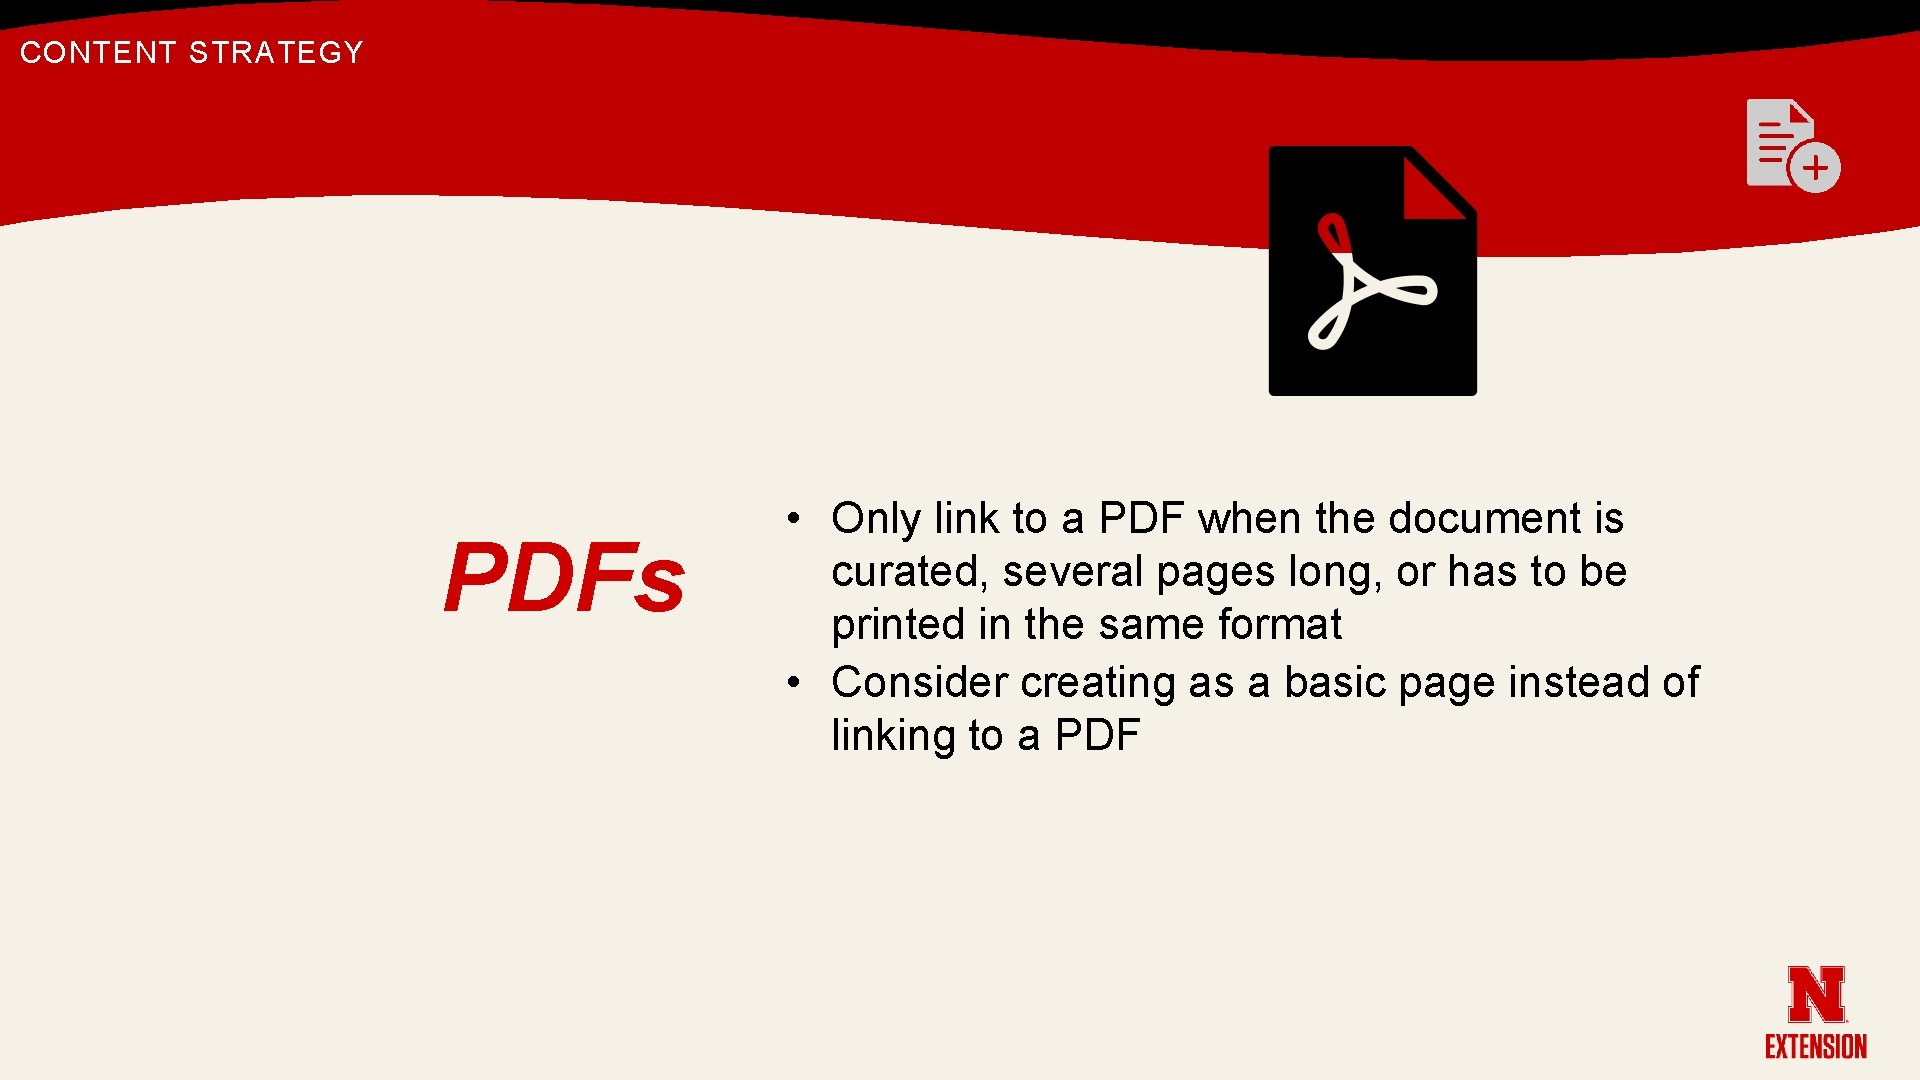 CONTENT STRATEGY PDFs • Only link to a PDF when the document is curated,